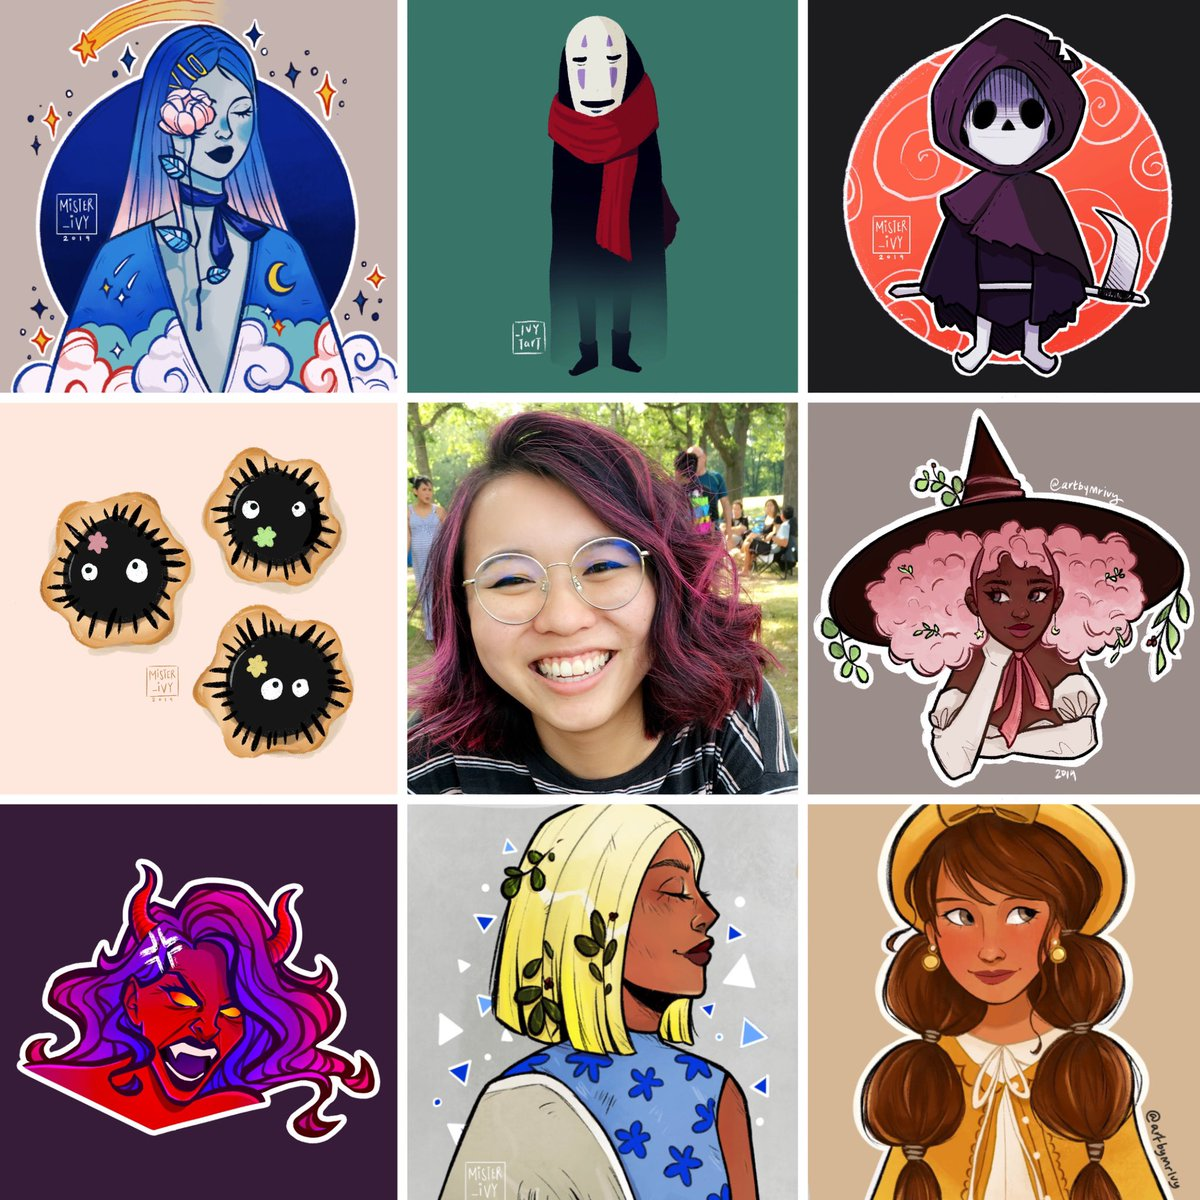 Woot!  Hope I'm not too late for #artvsartist2019!  Hey, I'm Ivy!  I'm a digital illustrator and game dev.   I like drawing and experimenting with different styles!   #artvsartist #VisibleWomen #digitalart<br>http://pic.twitter.com/KvJqS4Tti6